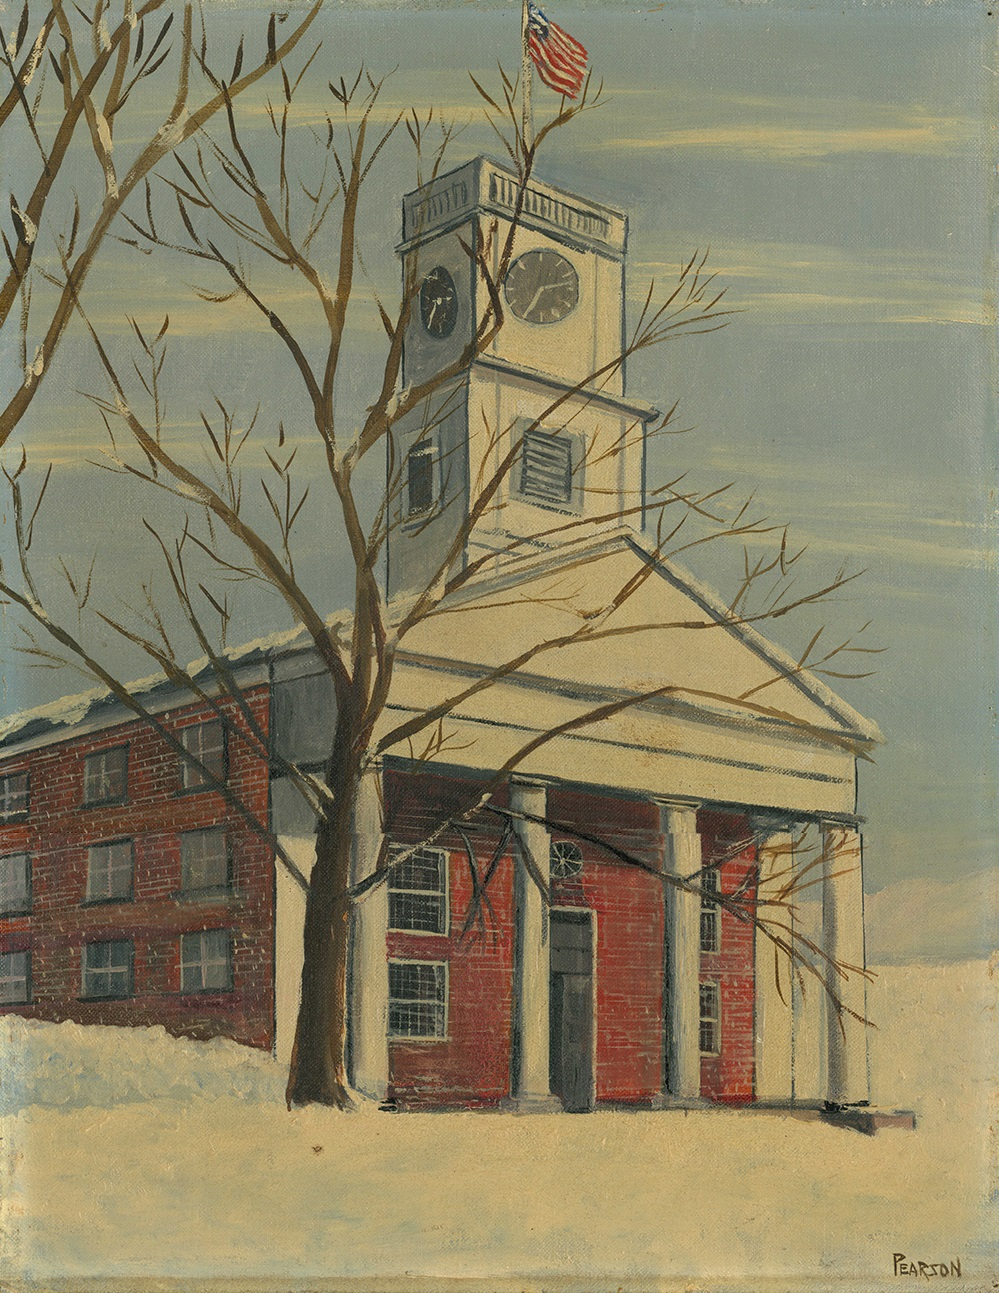 A tall square clock tower tops a brick chapel building with four plain columns. The ground is covered in snow and trees are bare.